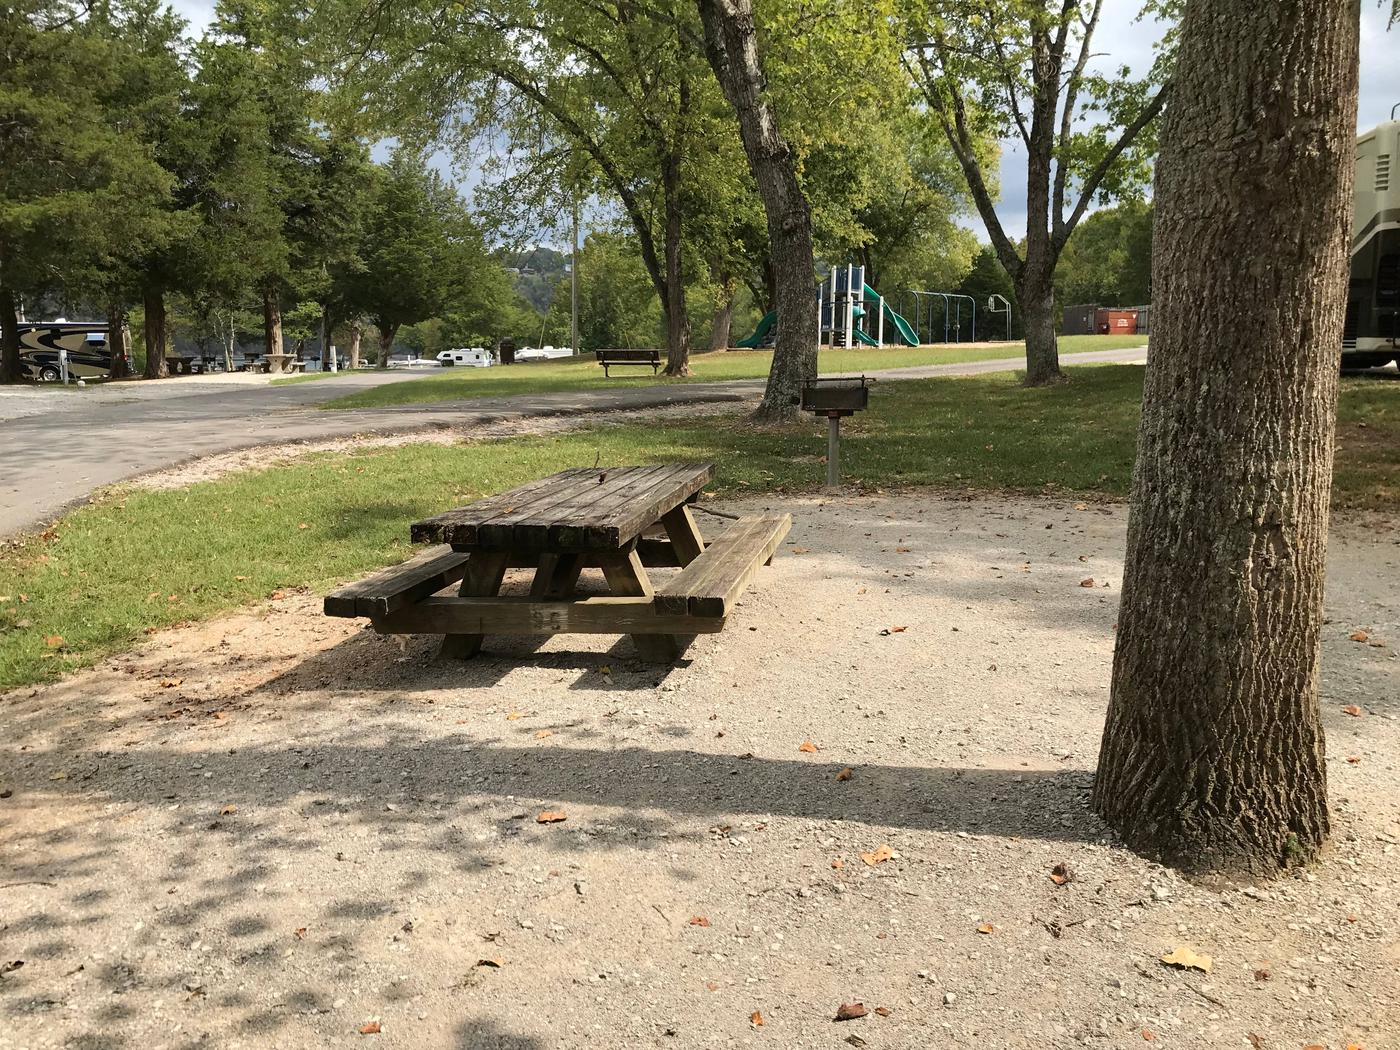 OBEY RIVER PARK SITE # 95 TABLE AND TREE IN PADOBEY RIVER PARK SITE # 95